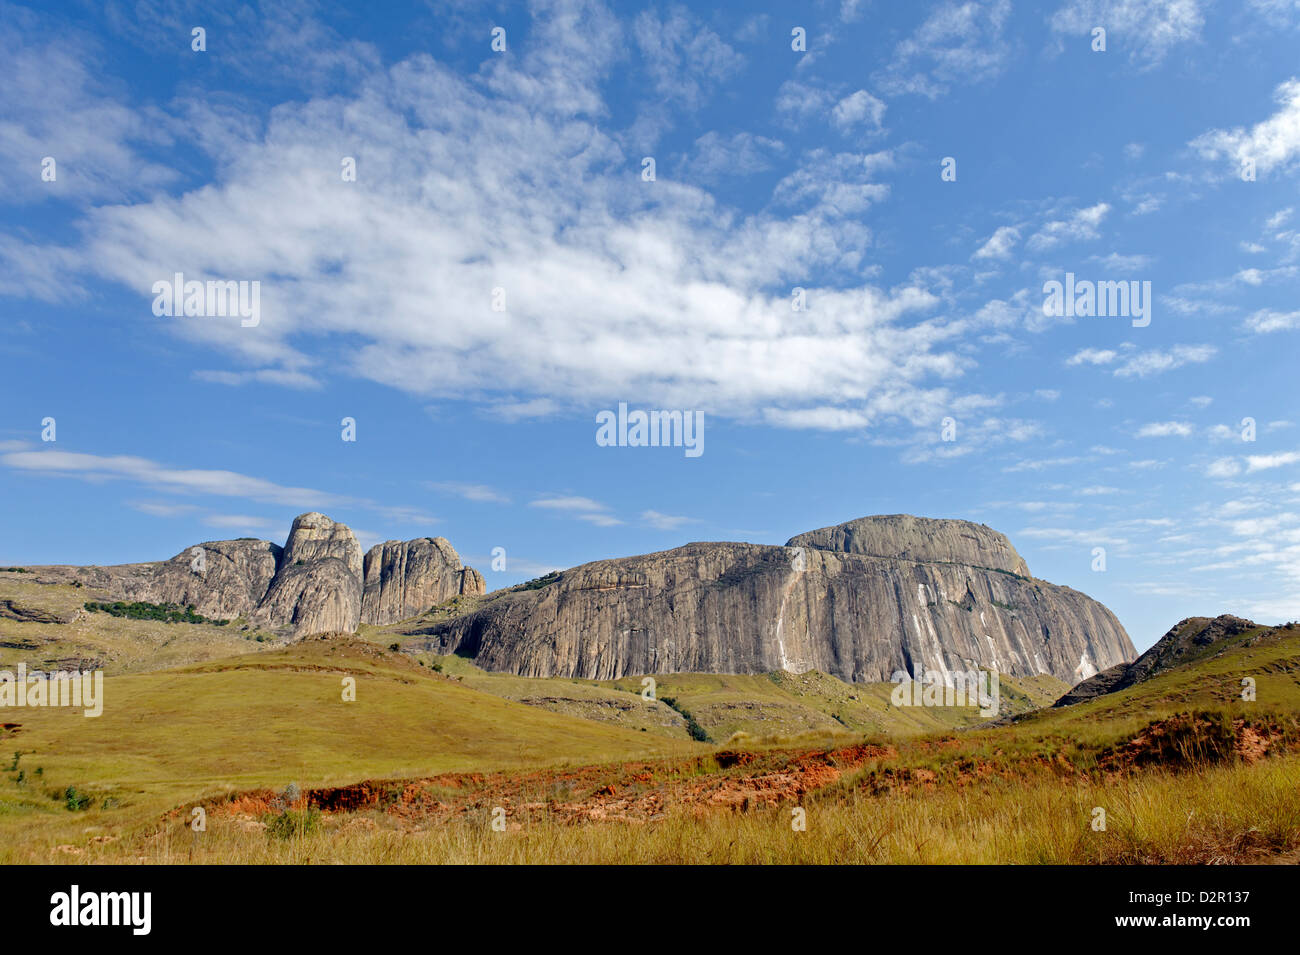 Ifandana rock, the place from which the Betsileo fell preferring death to Merina domination, Madagascar, Africa - Stock Image